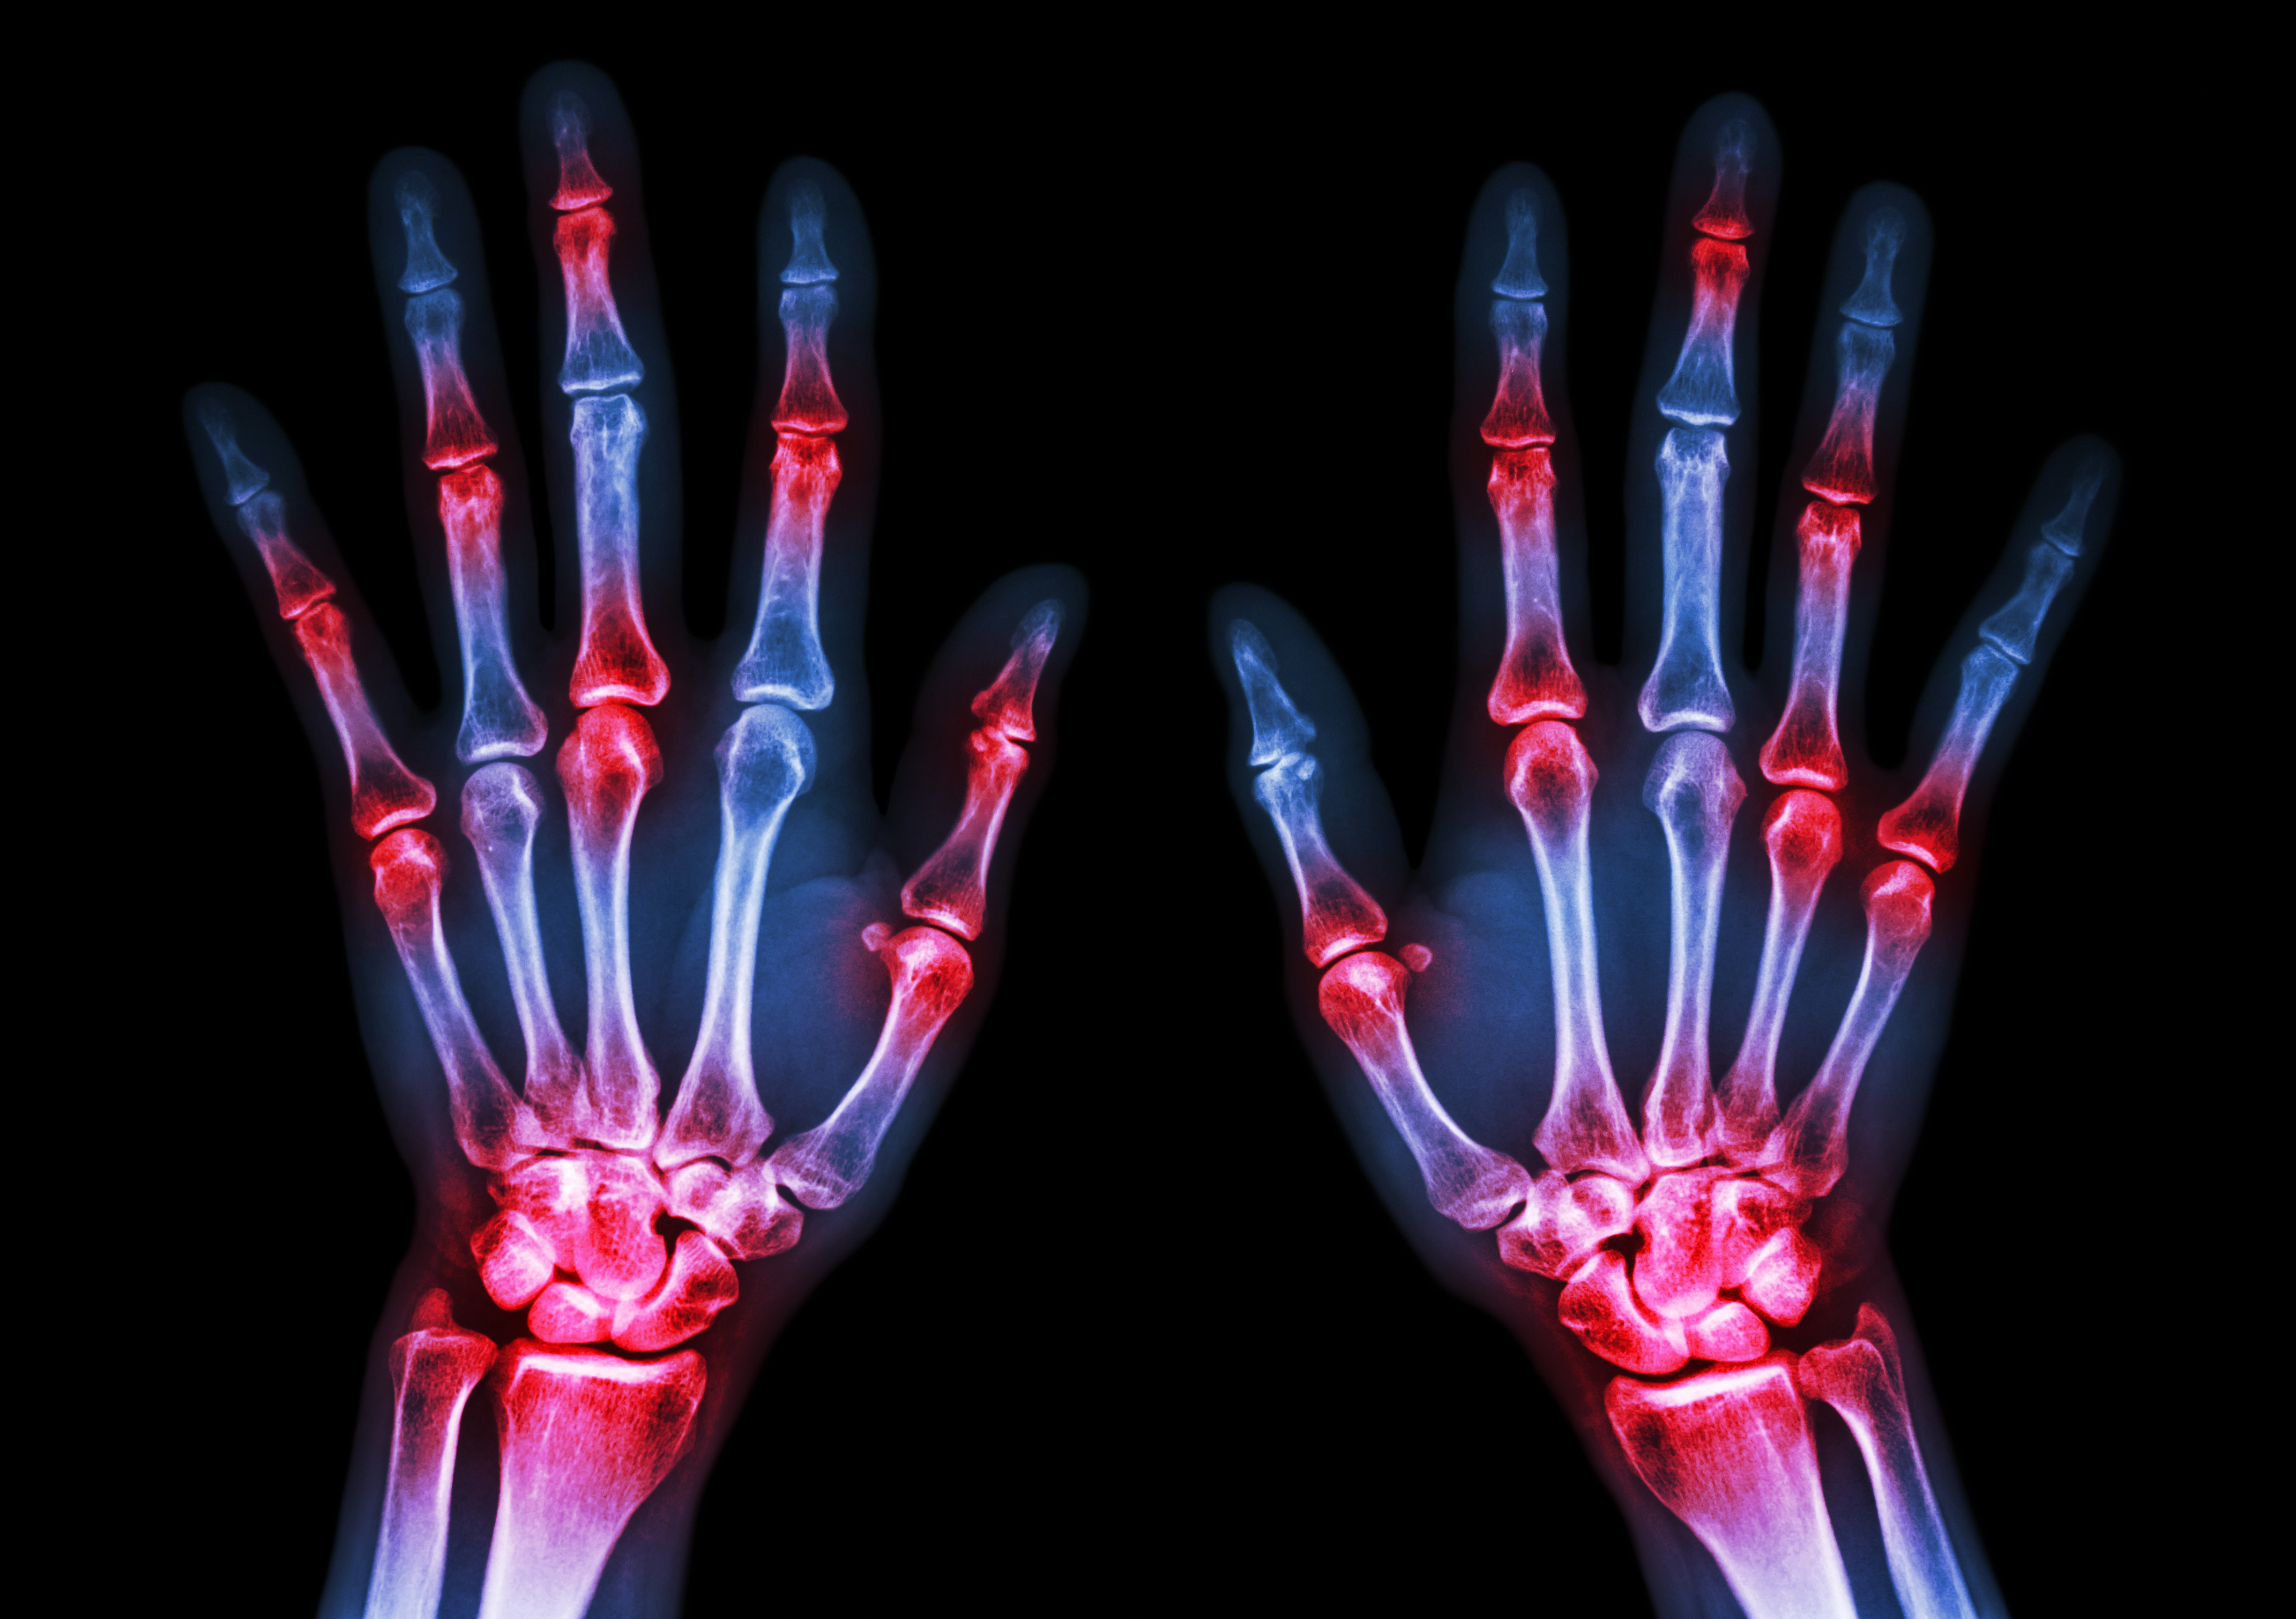 Rheumatoid arthritis patients might be at increased risk for PAH, suggesting that screening might be necessary also in this patient group.